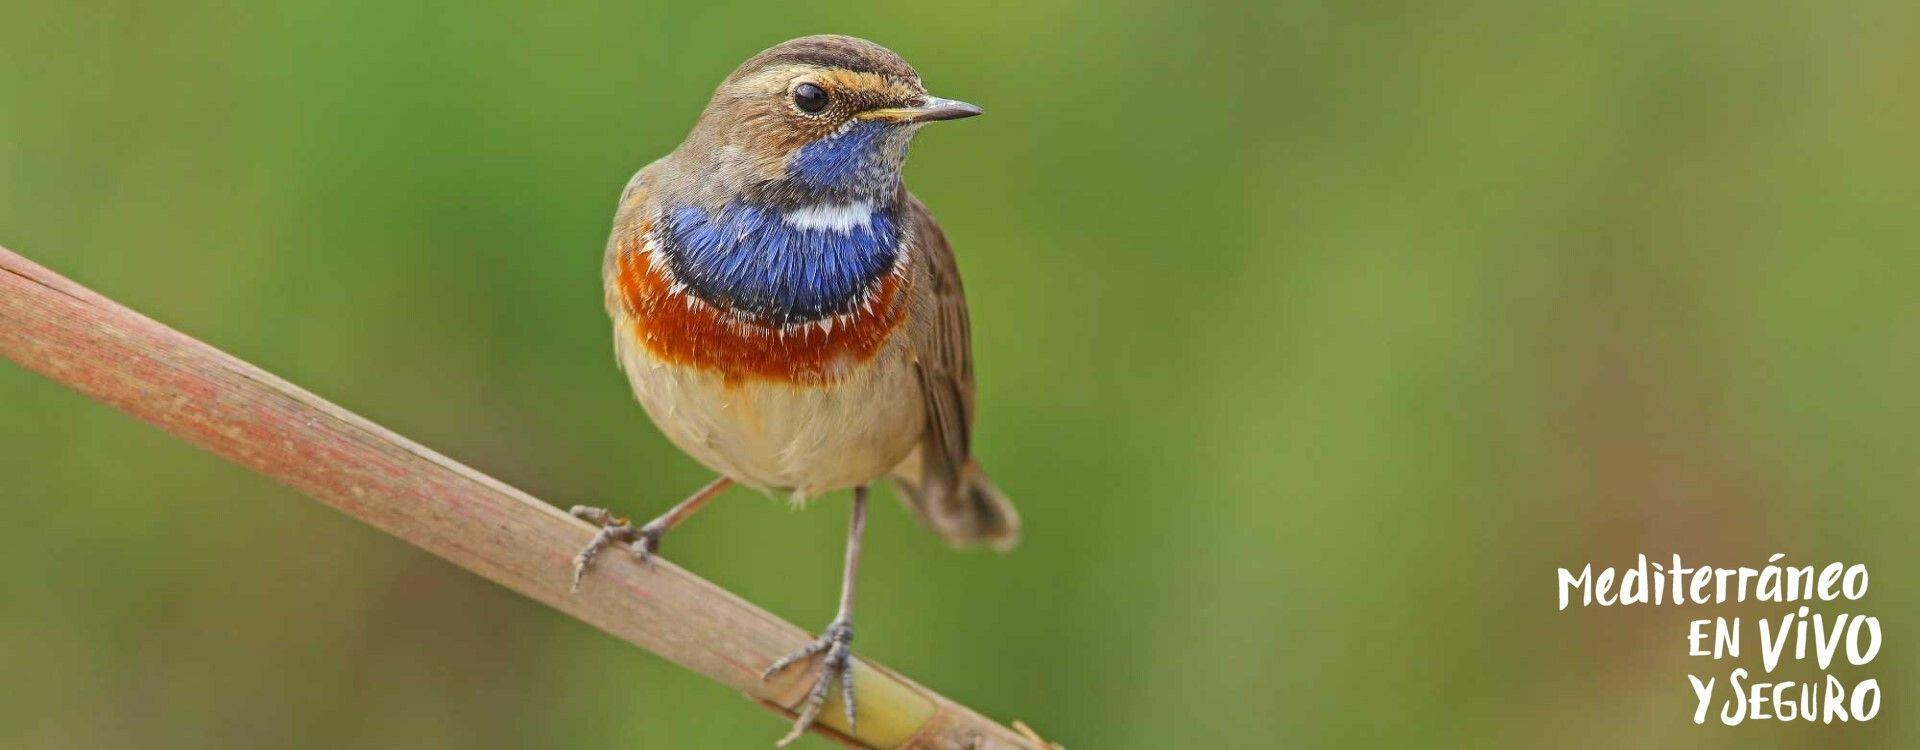 Image of a Blue-breasted Nightingale